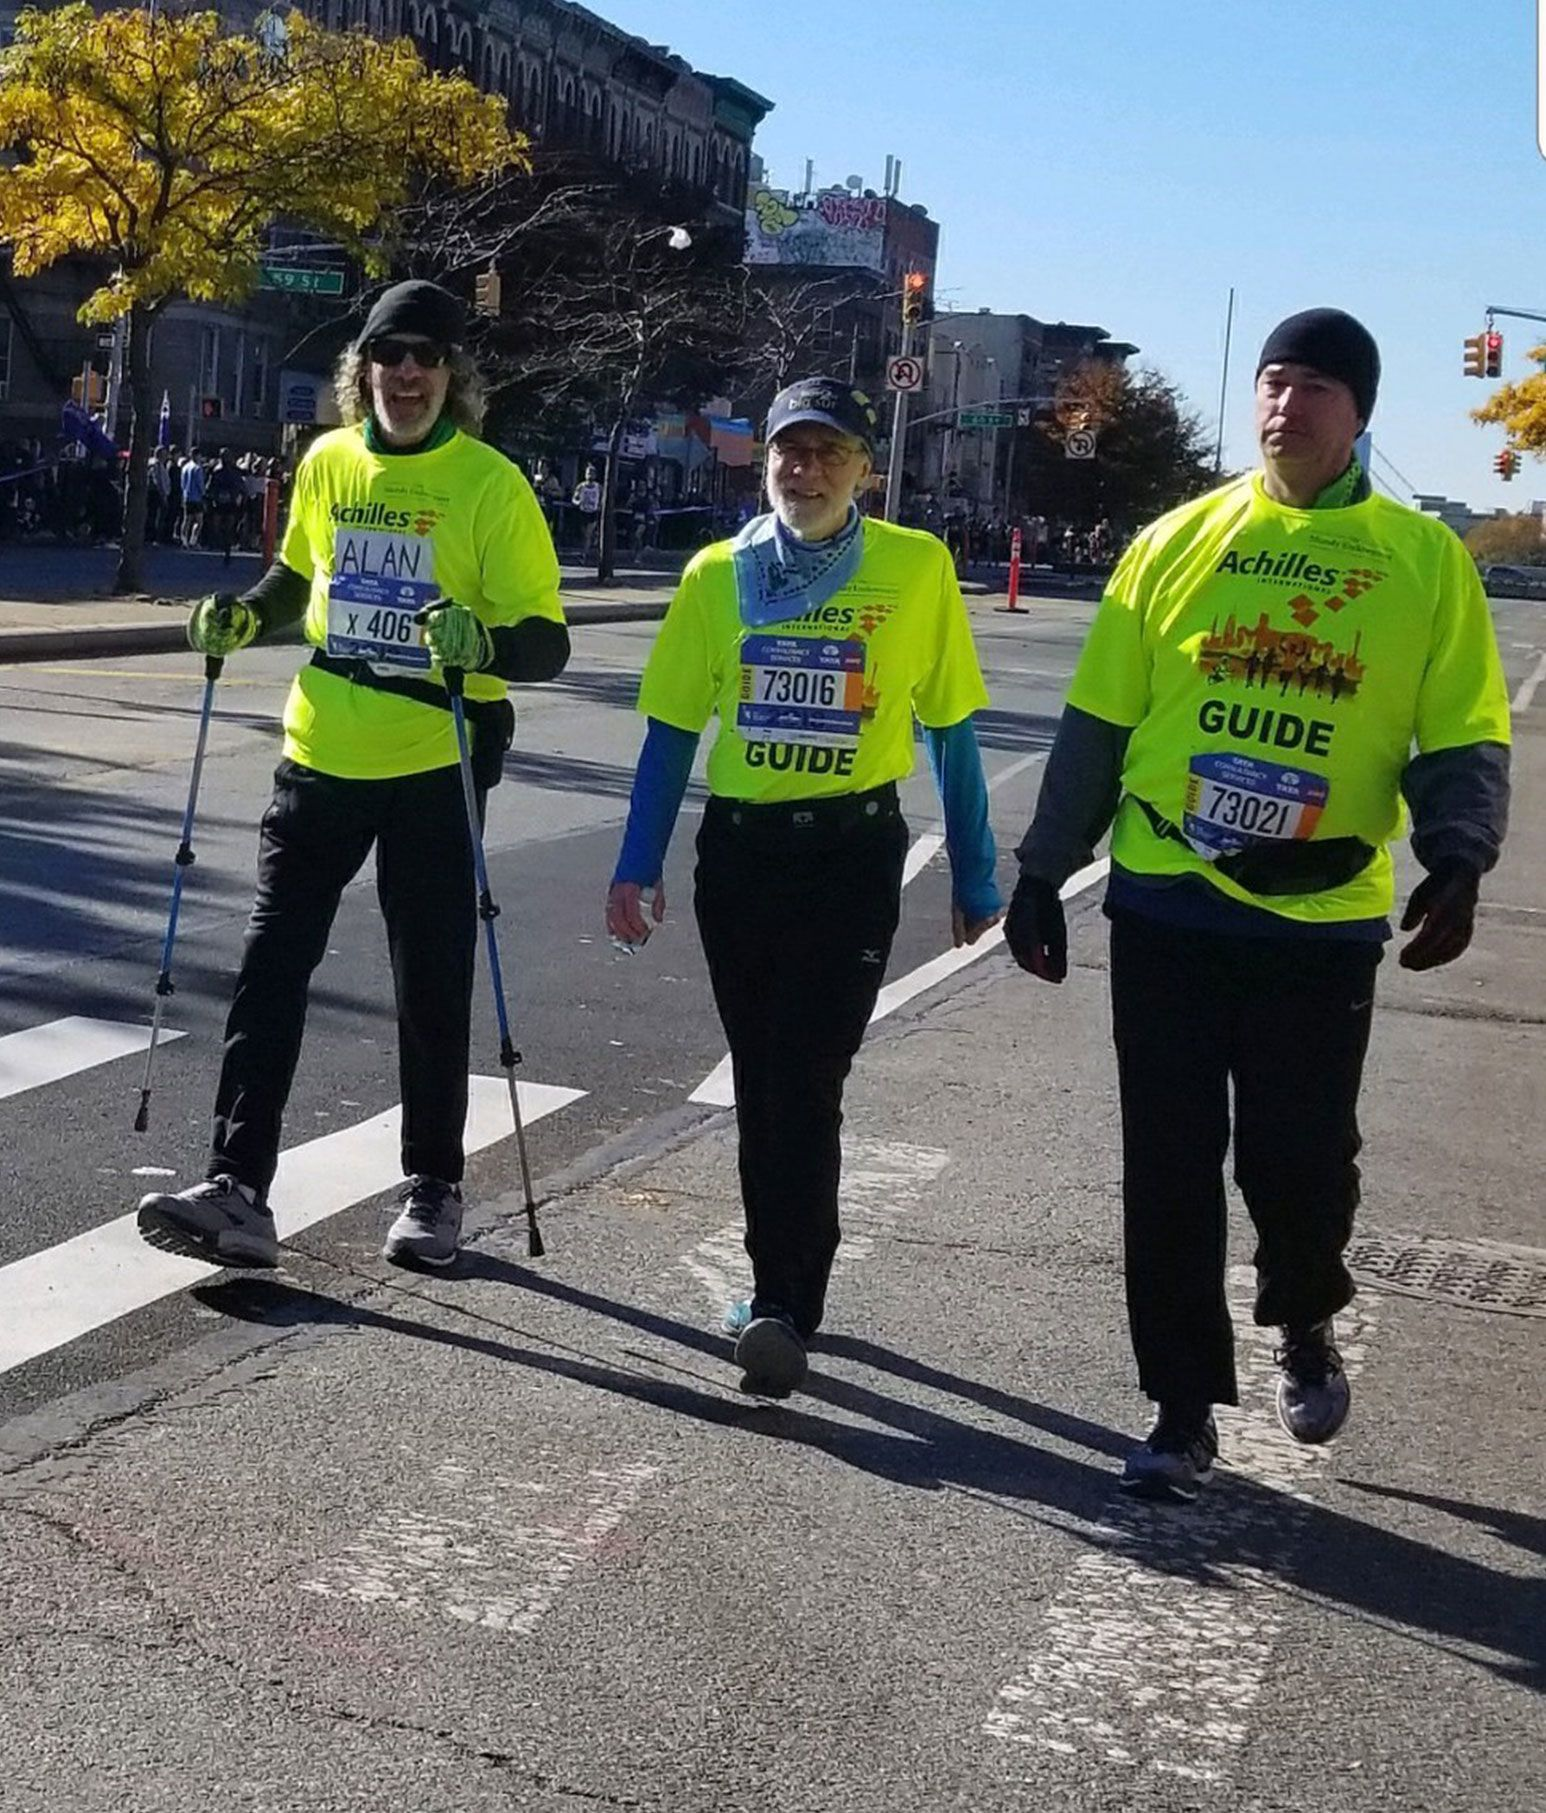 A trio of men are walking down a street together. They all are wearing black pants with neon green shirts. The man on the left is also using walking sticks in both hands.